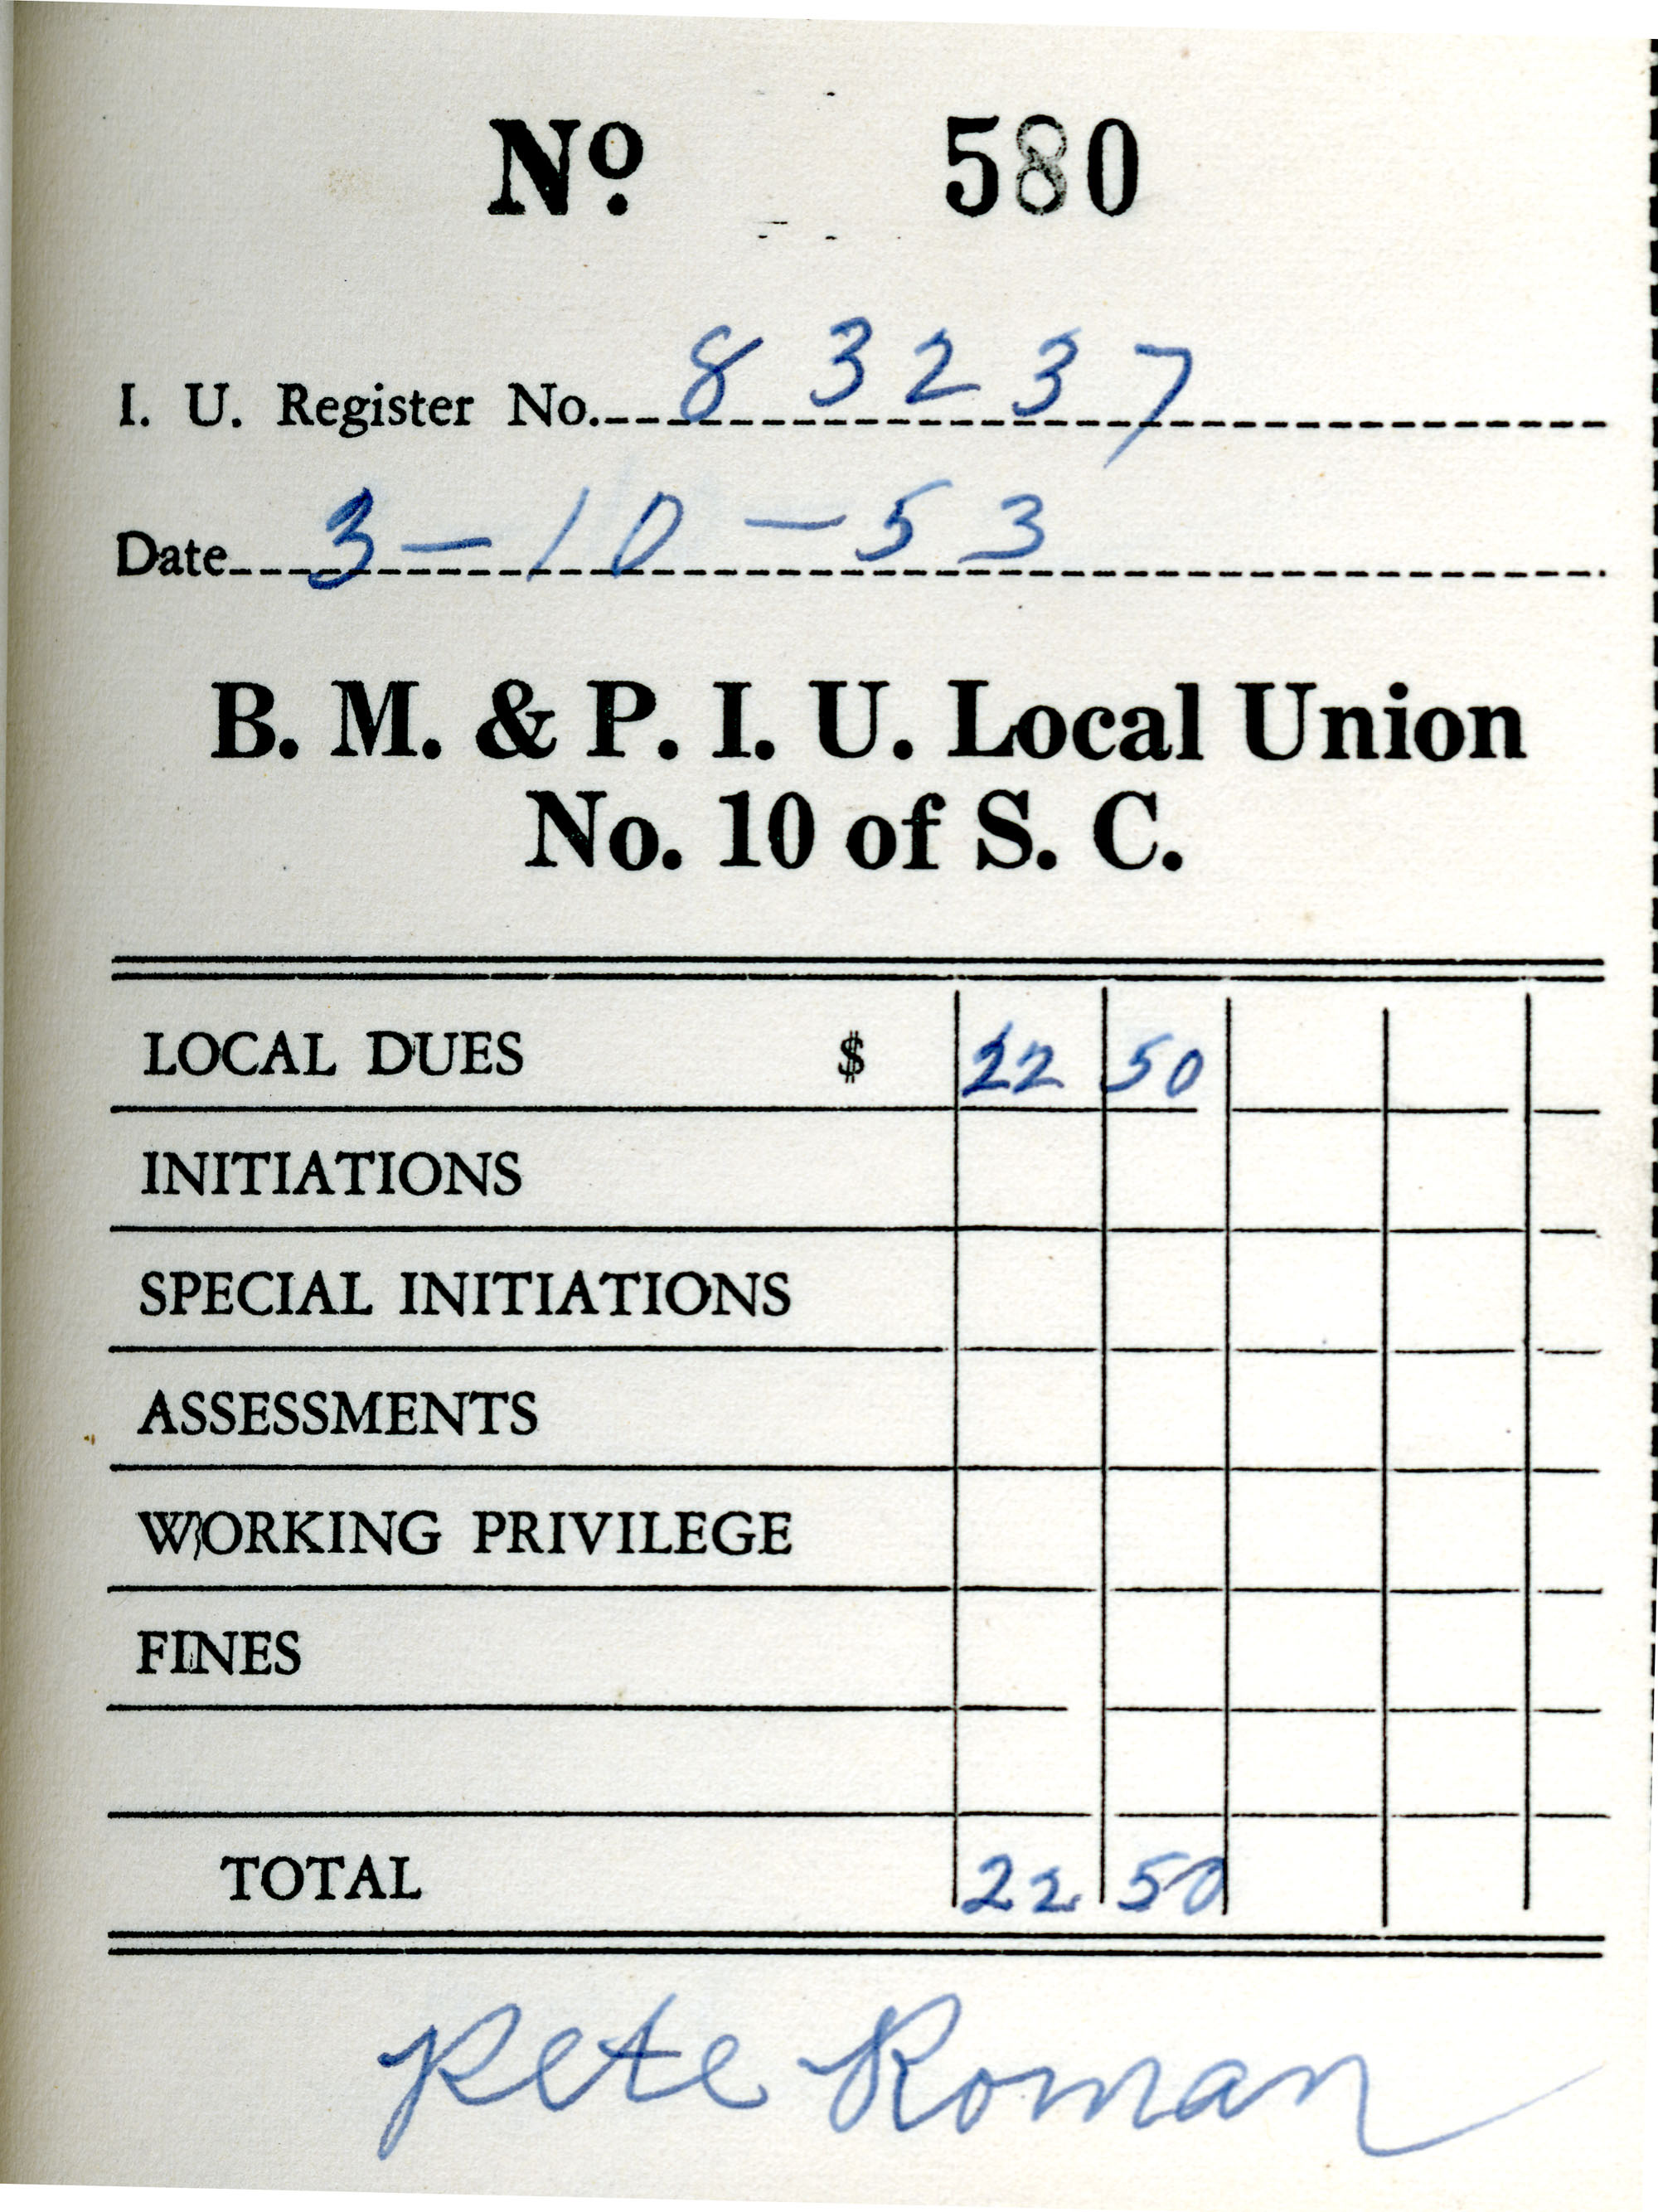 Receipt Book 1, Page 30